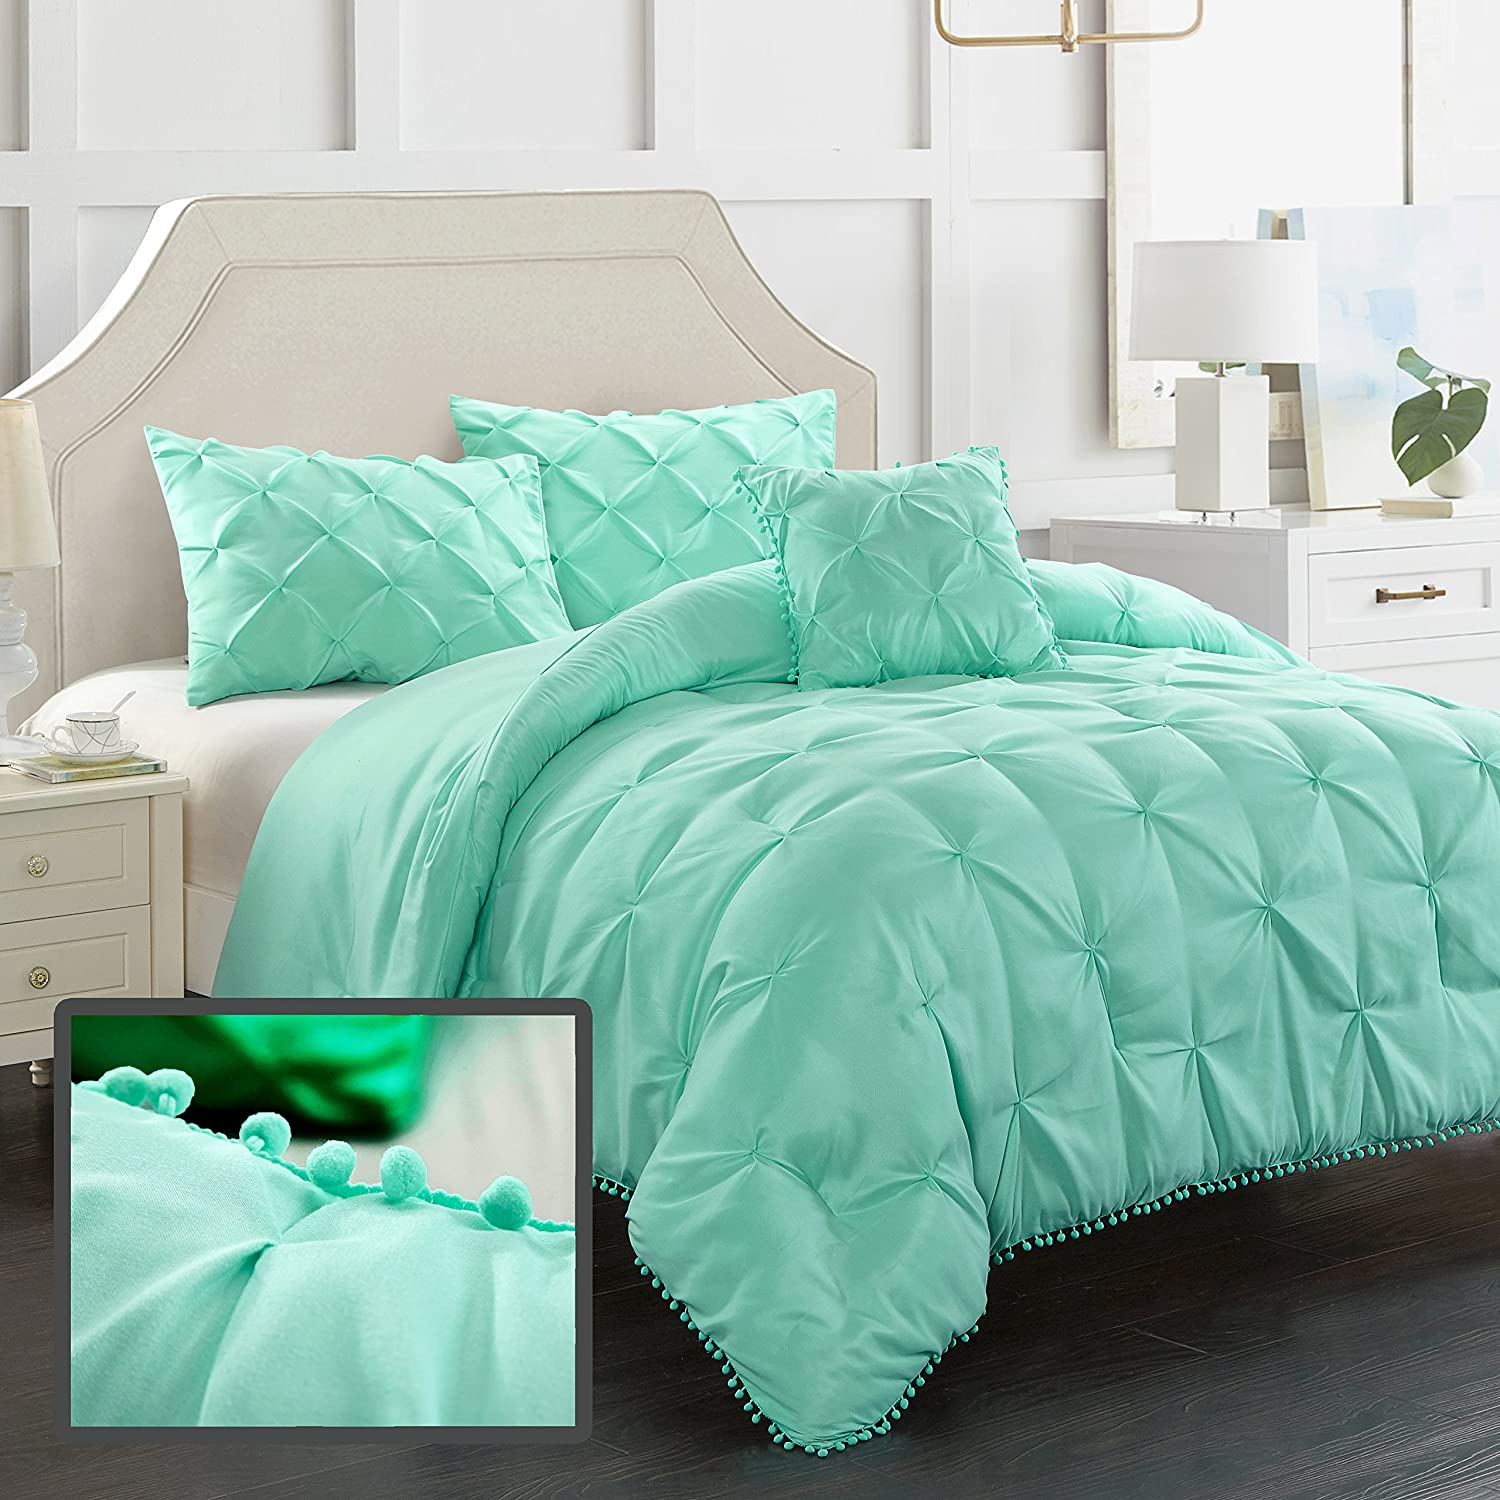 EVOLIVE 3pc Set Pinch Pleat/Kiss Pleat, Pintuck Down Alternative Comforter Set with Pompom (Twin, Mint)